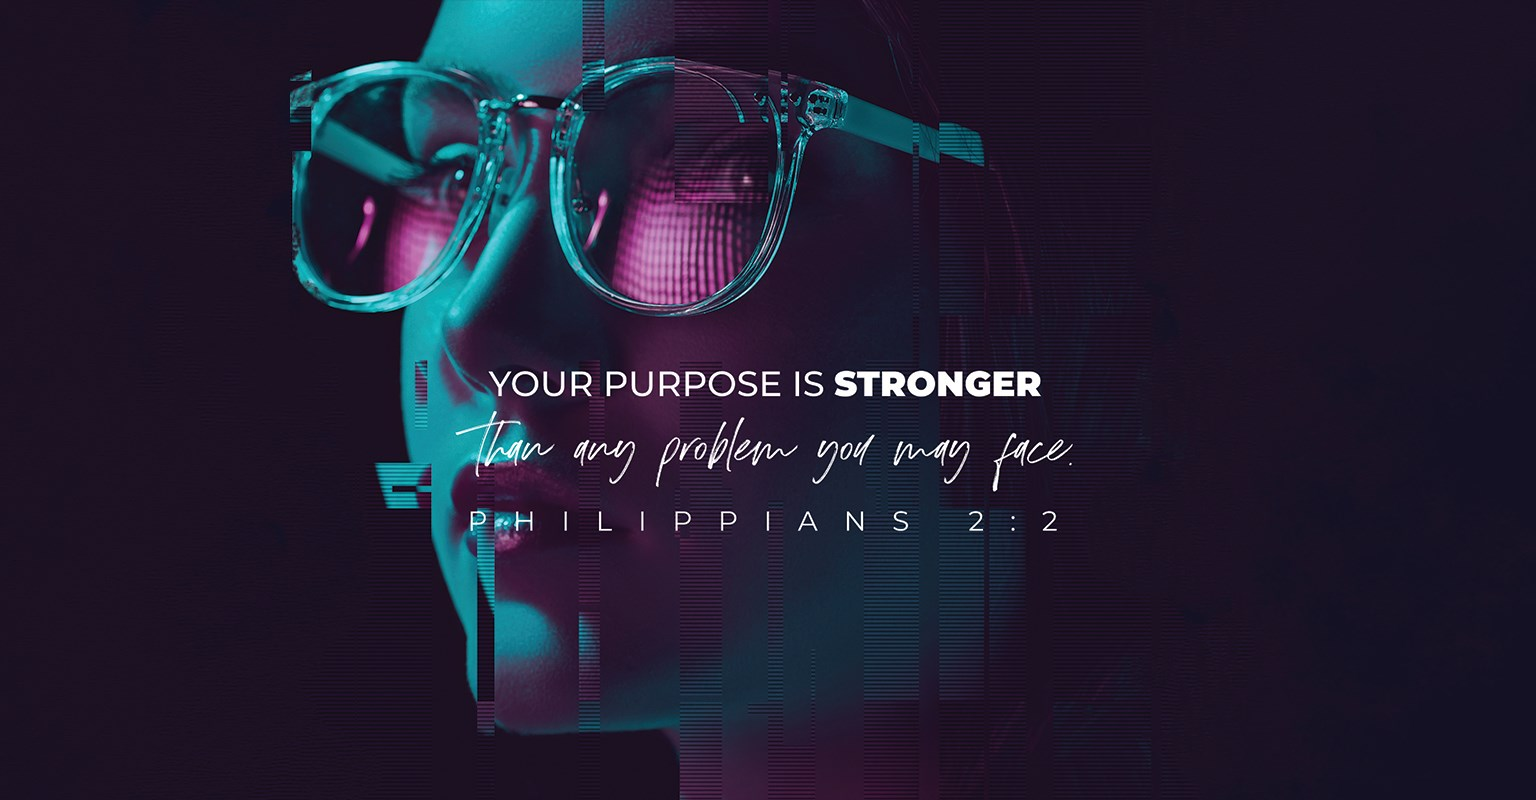 Your Purpose is Stronger than any Problem You May Face